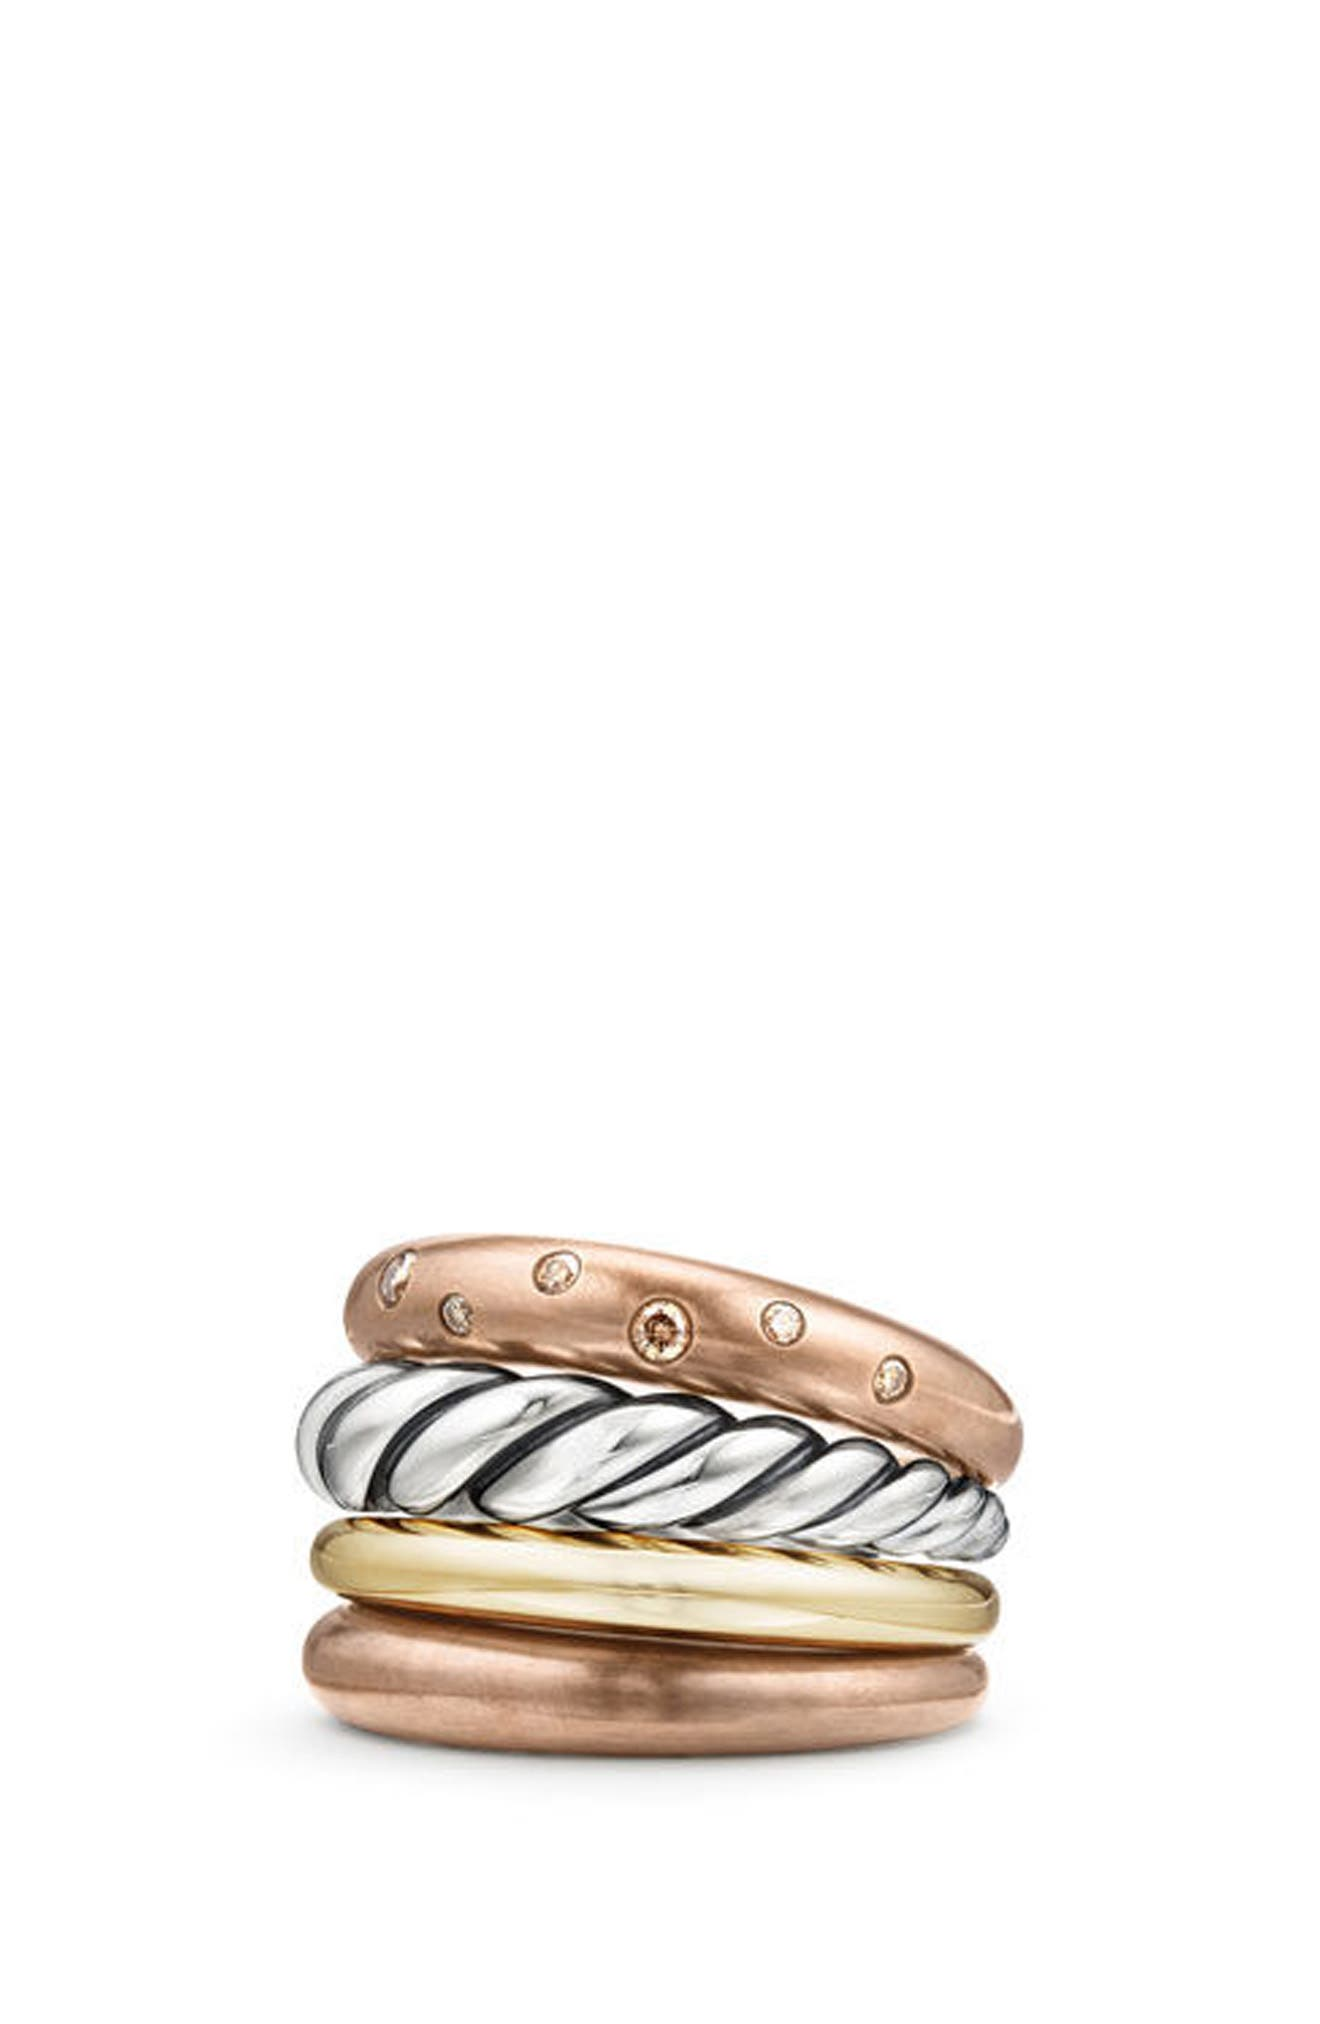 Alternate Image 1 Selected - David Yurman Pure Form Mixed Metal Four-Row Ring with Diamonds, Bronze & Silver, 17.5mm